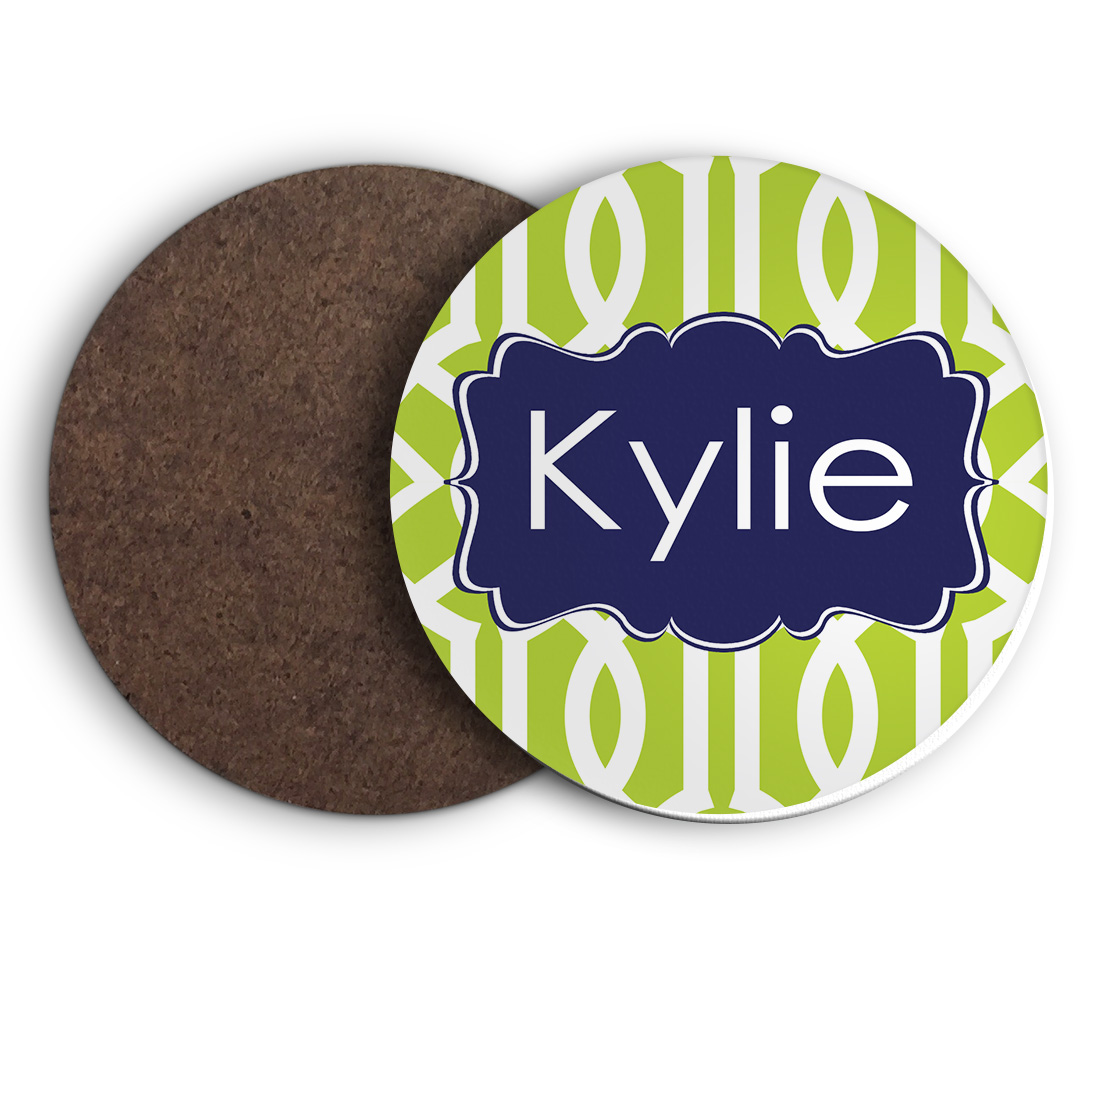 Custom Personalized Party Coasters Monogrammed Coasters